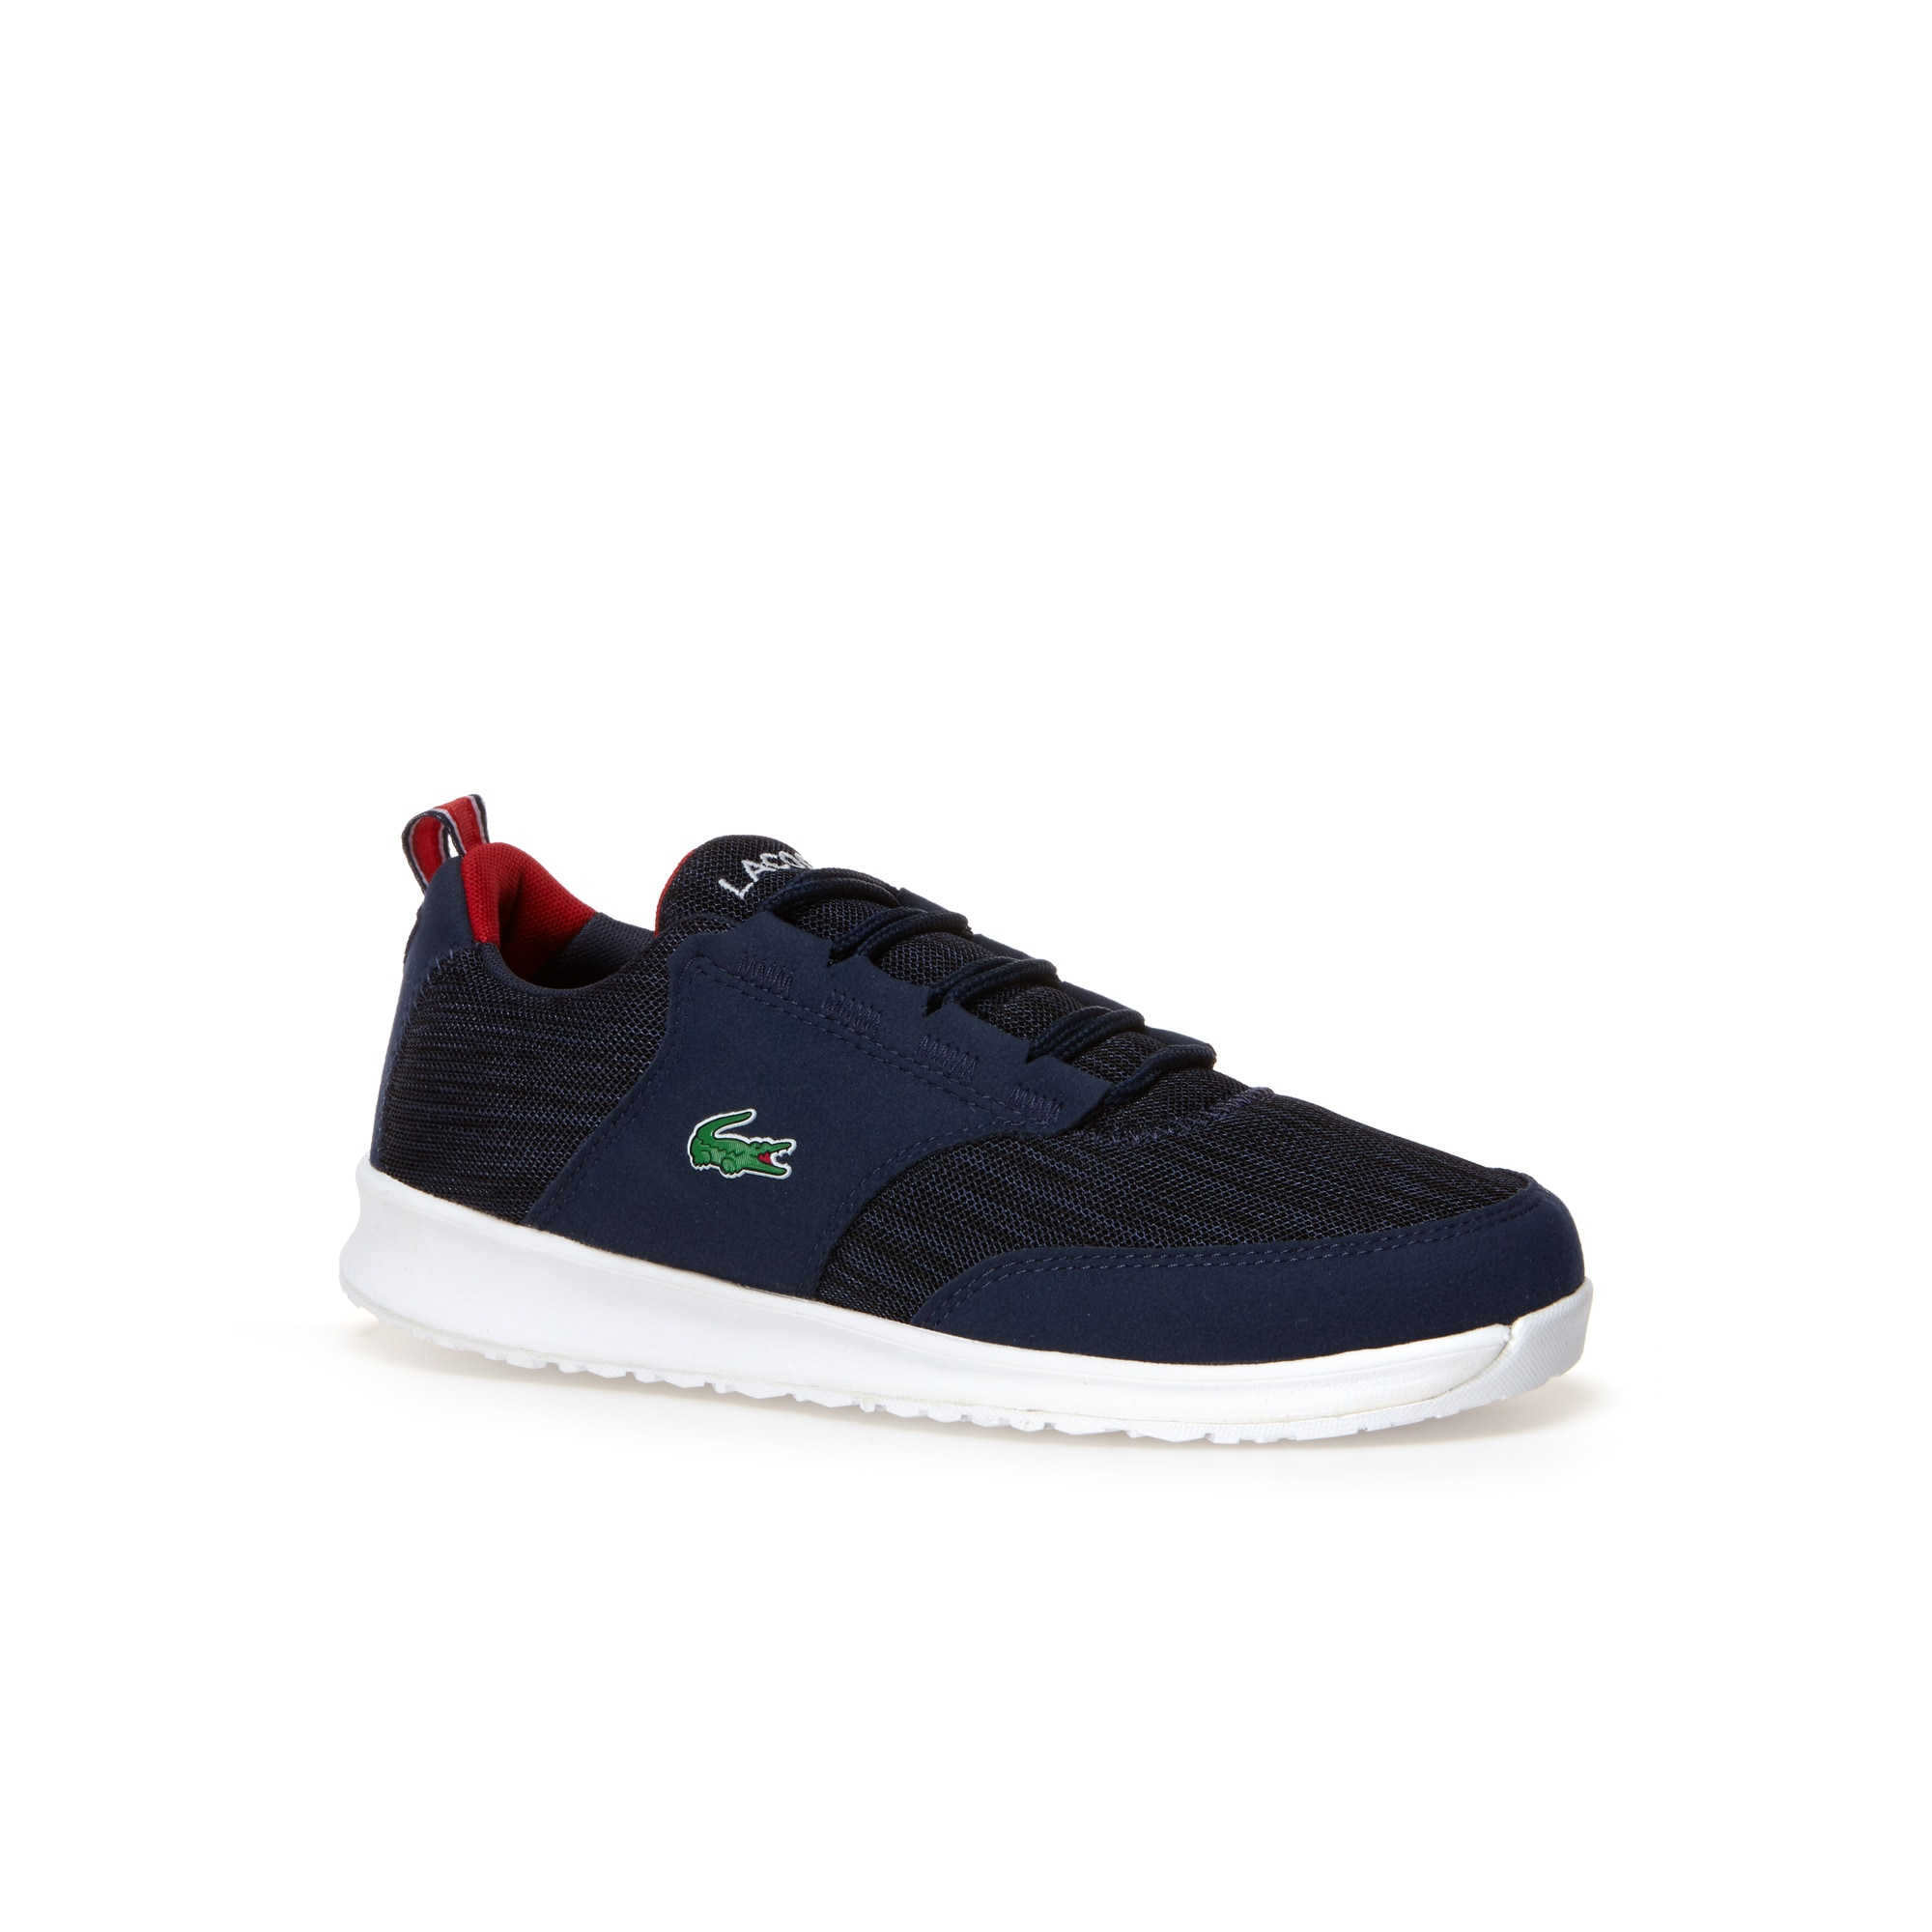 Kids' L.ight Textile Trainers